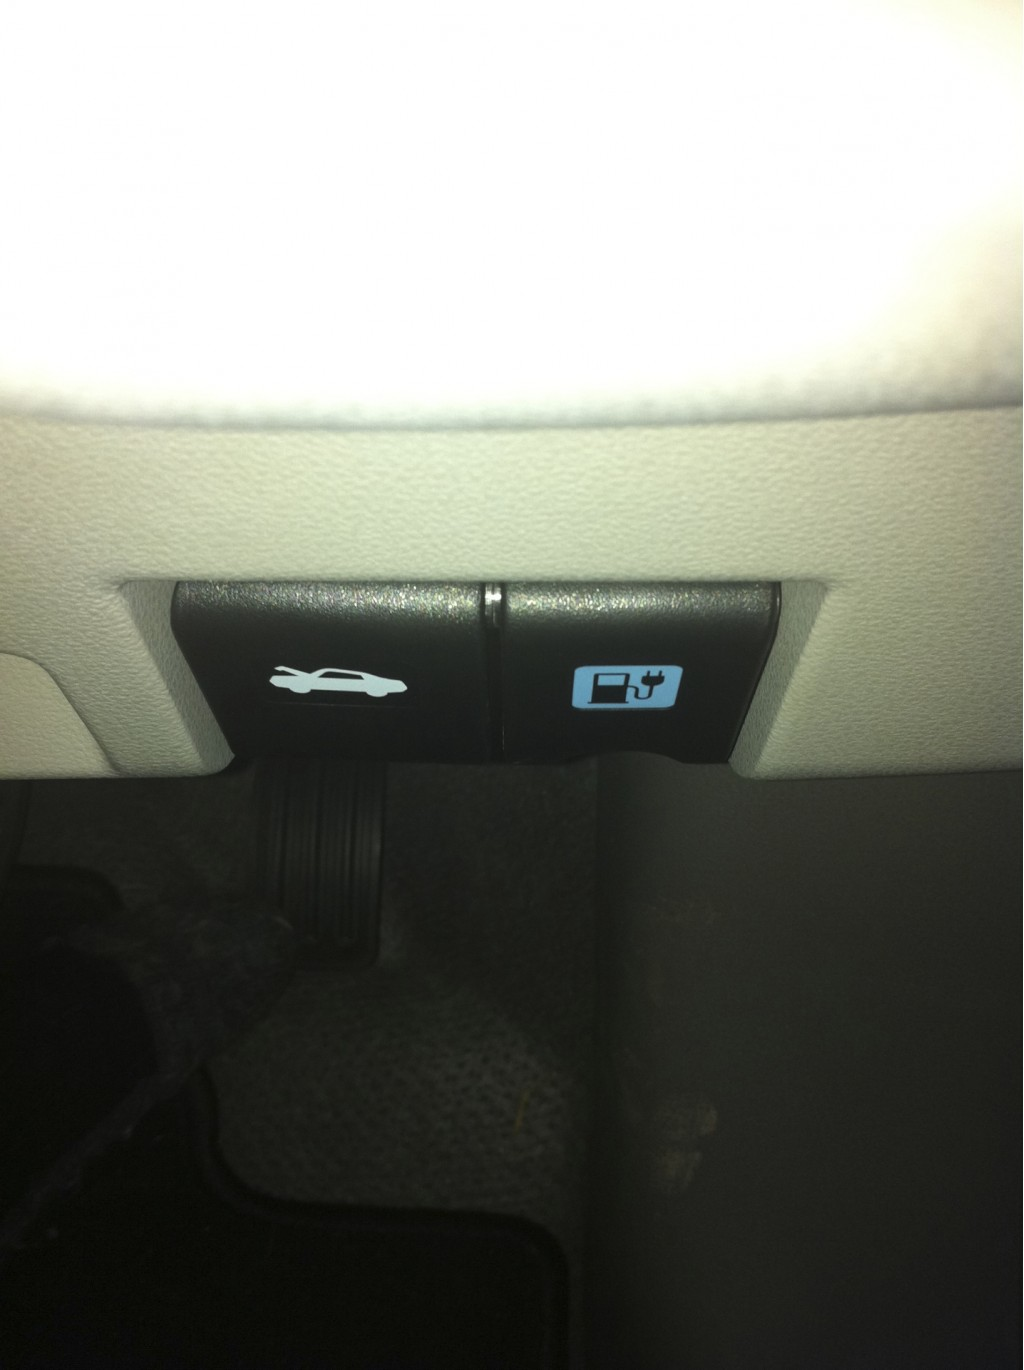 2014 nissan leaf release - photo #48